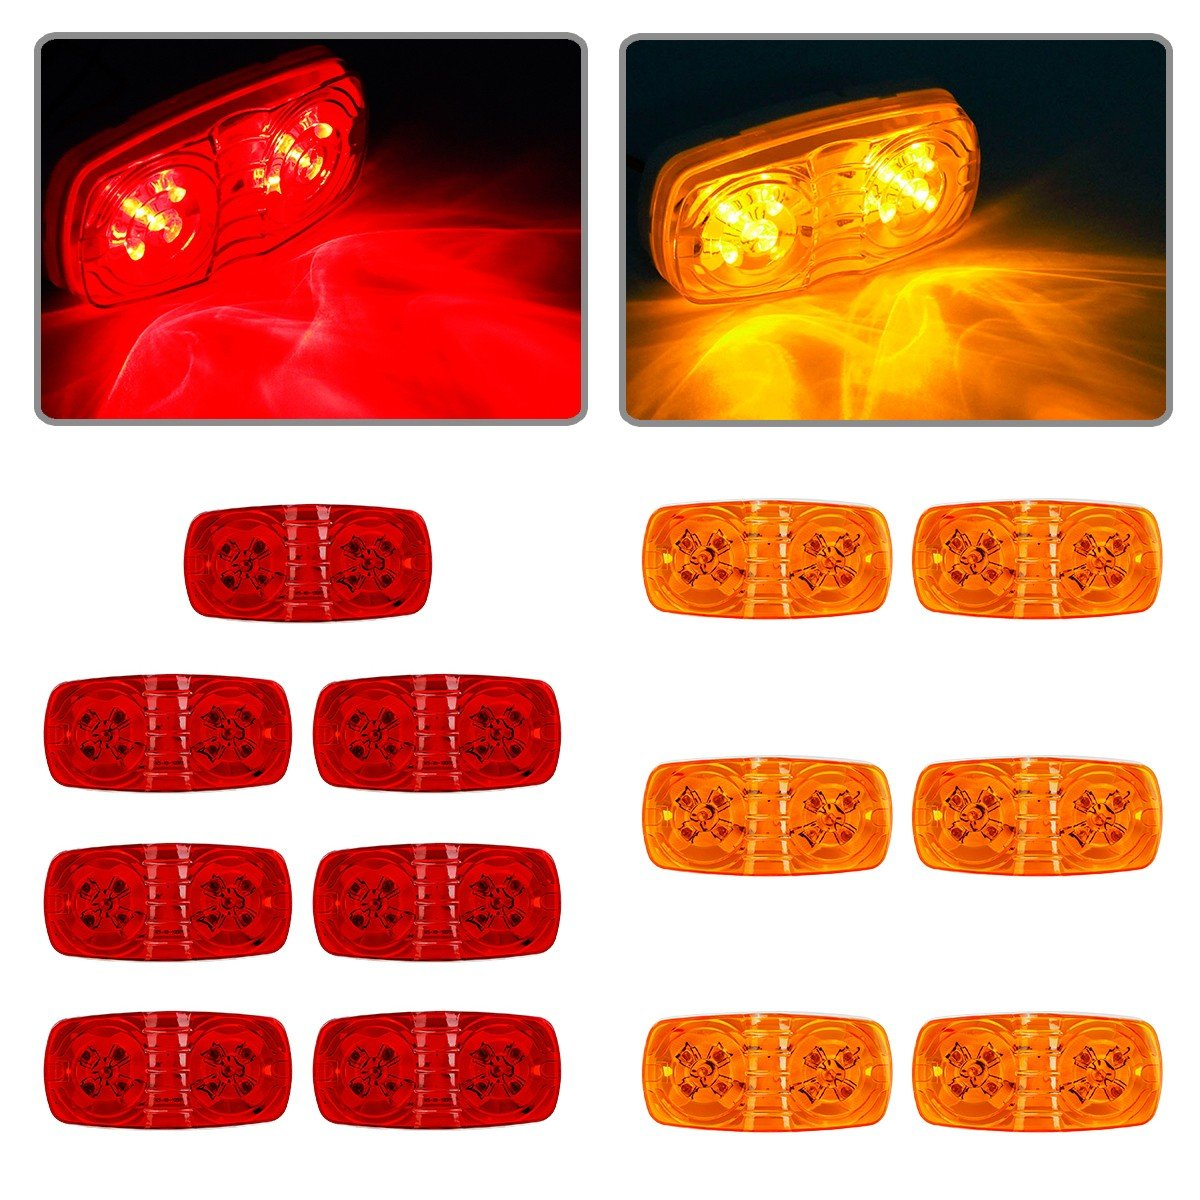 Best Rated In Boat Trailer Lights Helpful Customer Reviews Not Working After Installing Wiring Partsam 13x Marker Led Light Double Bullseye Amber Red 10led Clearance